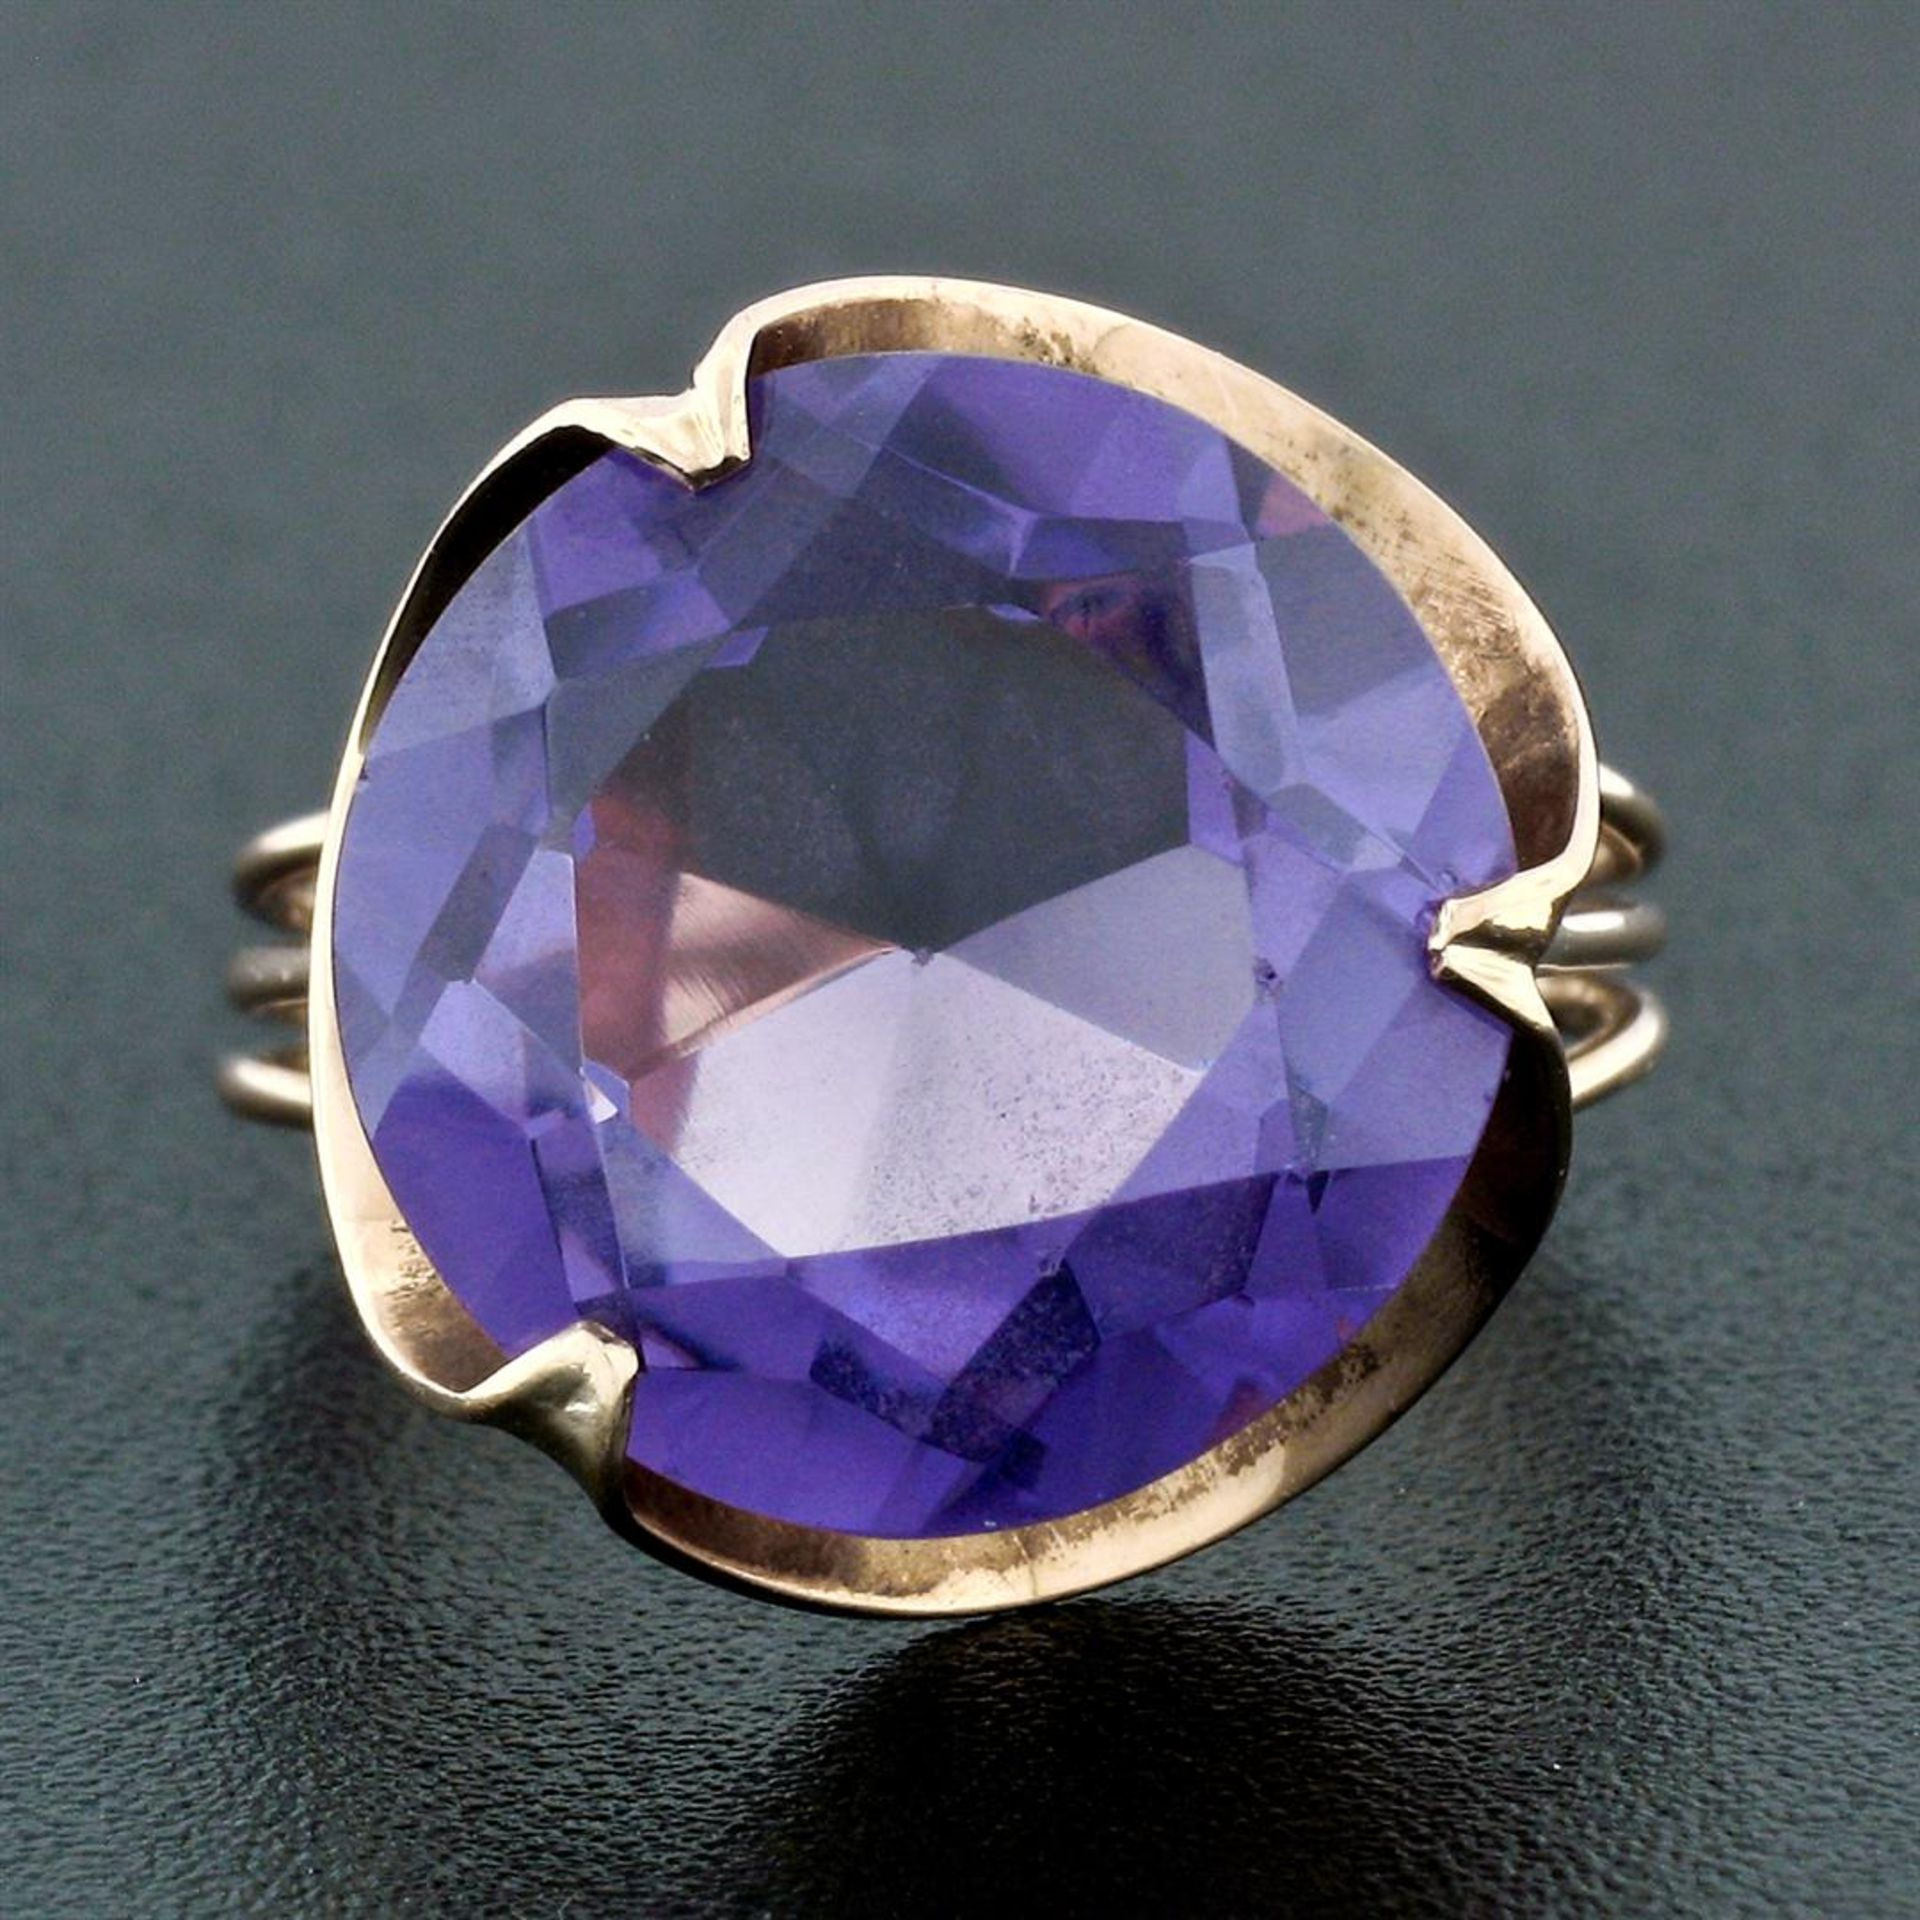 Retro Vintage Handmade 14k Rose Gold 13.7mm Synthetic Alexandrite Solitaire Ring - Image 2 of 8